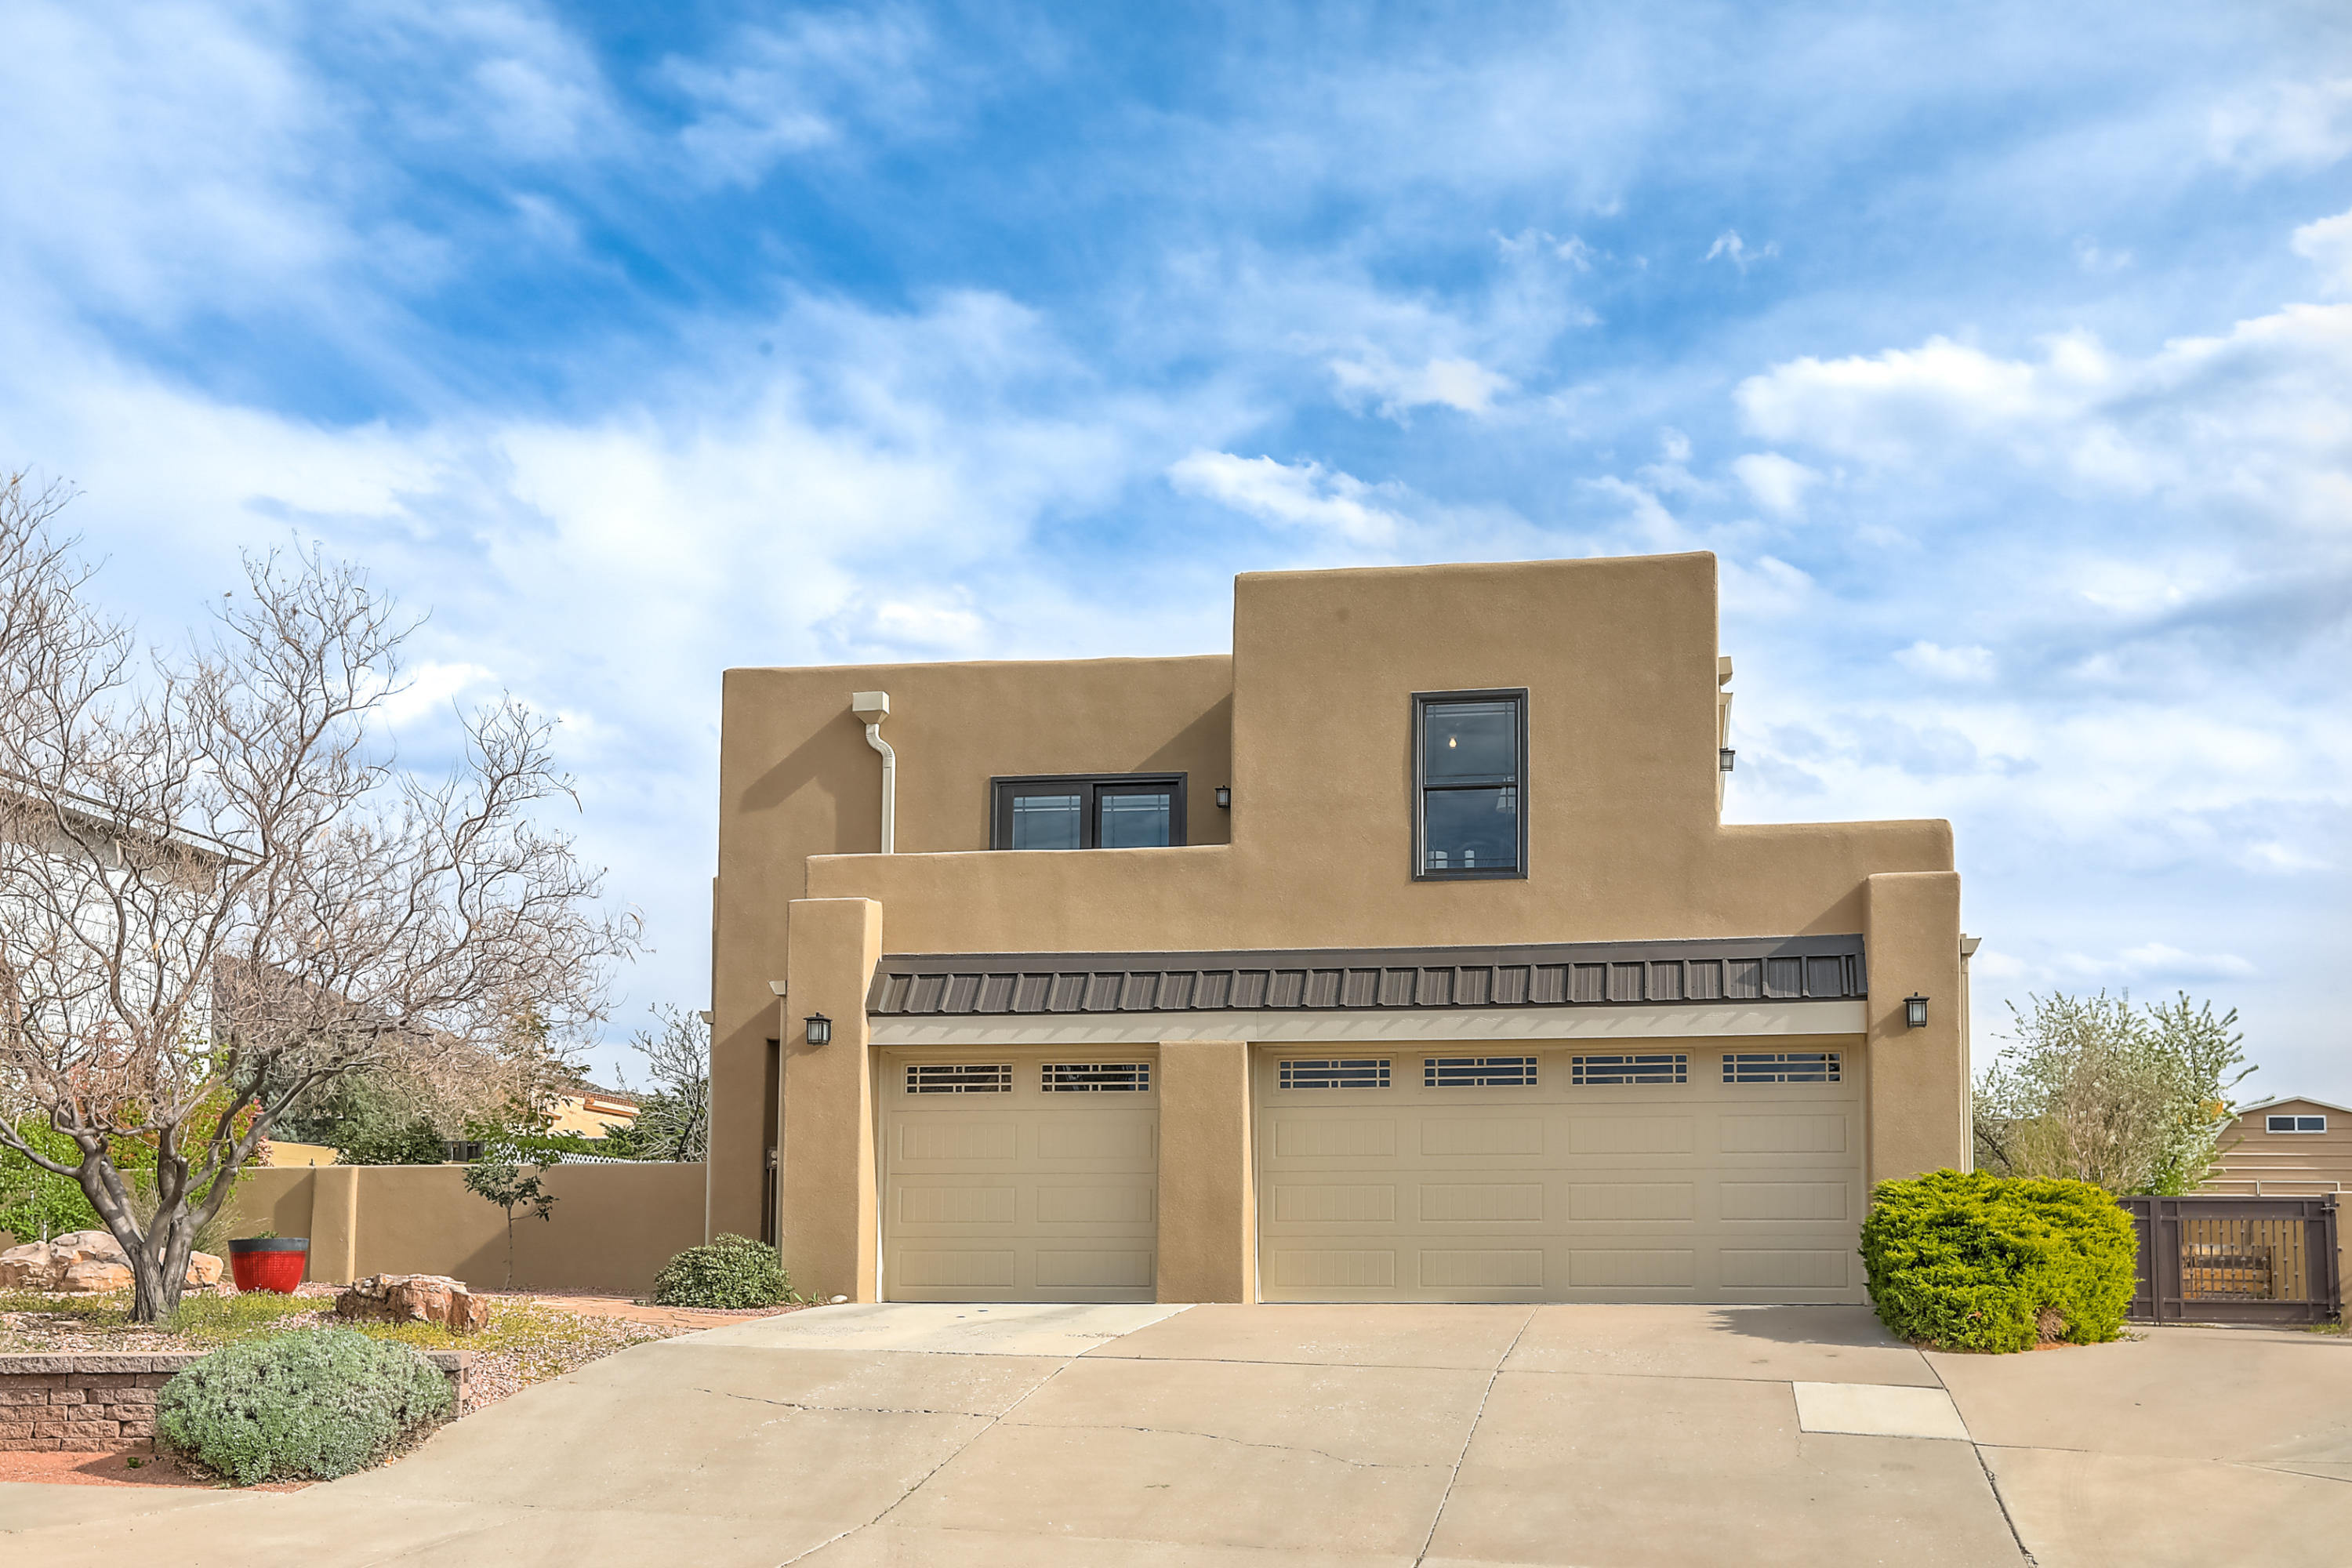 Meticulously updated throughout with top quality finishes. Upgrades include Pella windows & doors, tpo membrane roof, stucco and much more. Hard to find 3 car garage plus backyard access with room for RV parking. Front courtyard, two covered patios on the south and west sides of the home and balconies to enjoy the Sandia and mesa views. Soaring ceilings greet you in the living area which is complete with built-in bookshelves and a cozy fireplace. Refrigerated A/C. Kitchen boasts ample cabinets for storage and is open to the dining area perfect for entertaining. The master suite is spacious & features a luxurious bathroom with double vanity &large shower with frameless glass. This home will not disappoint & all in a superb location.Easy access to dining, entertainment, parks & much more!